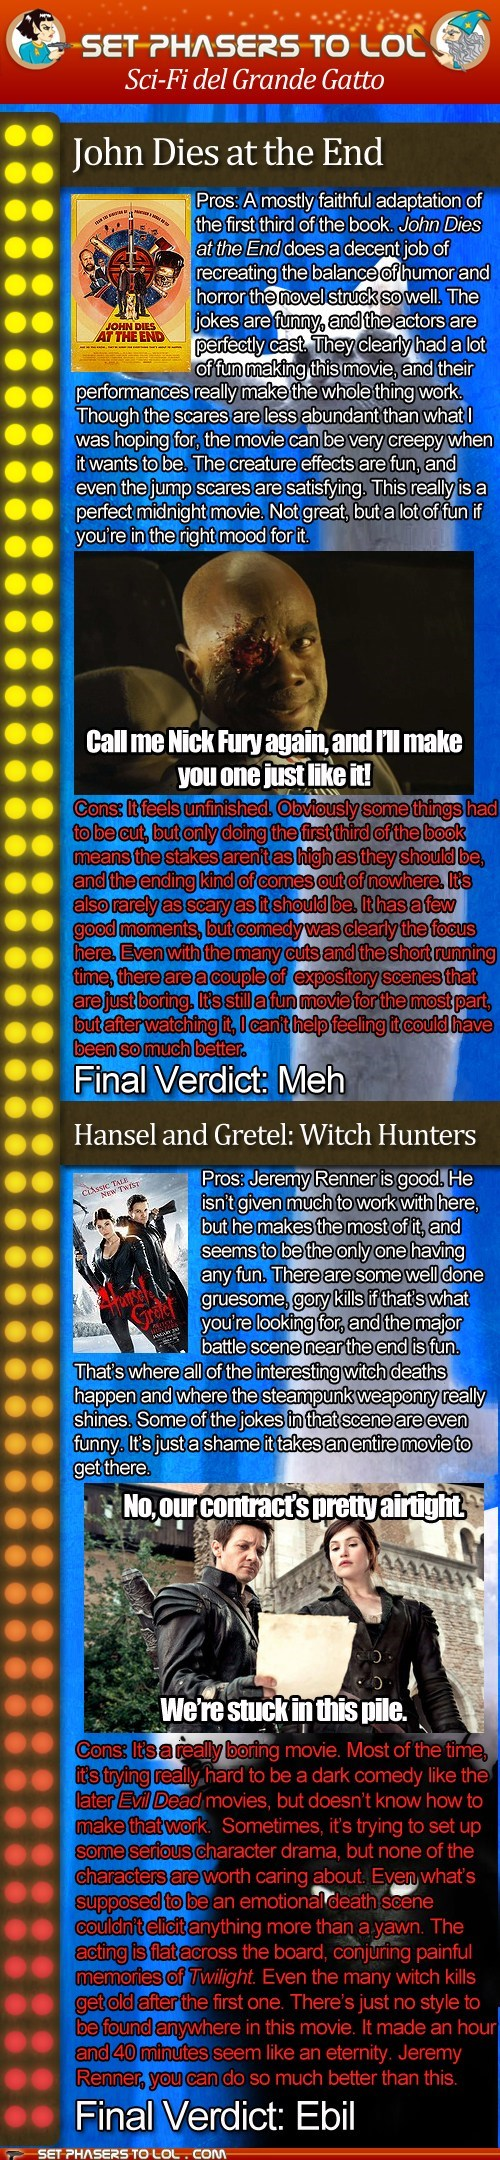 "Sci-Fi del Grande Gatto: ""John Dies at the End"" and ""Hansel and Gretel: Witch Hunters"""